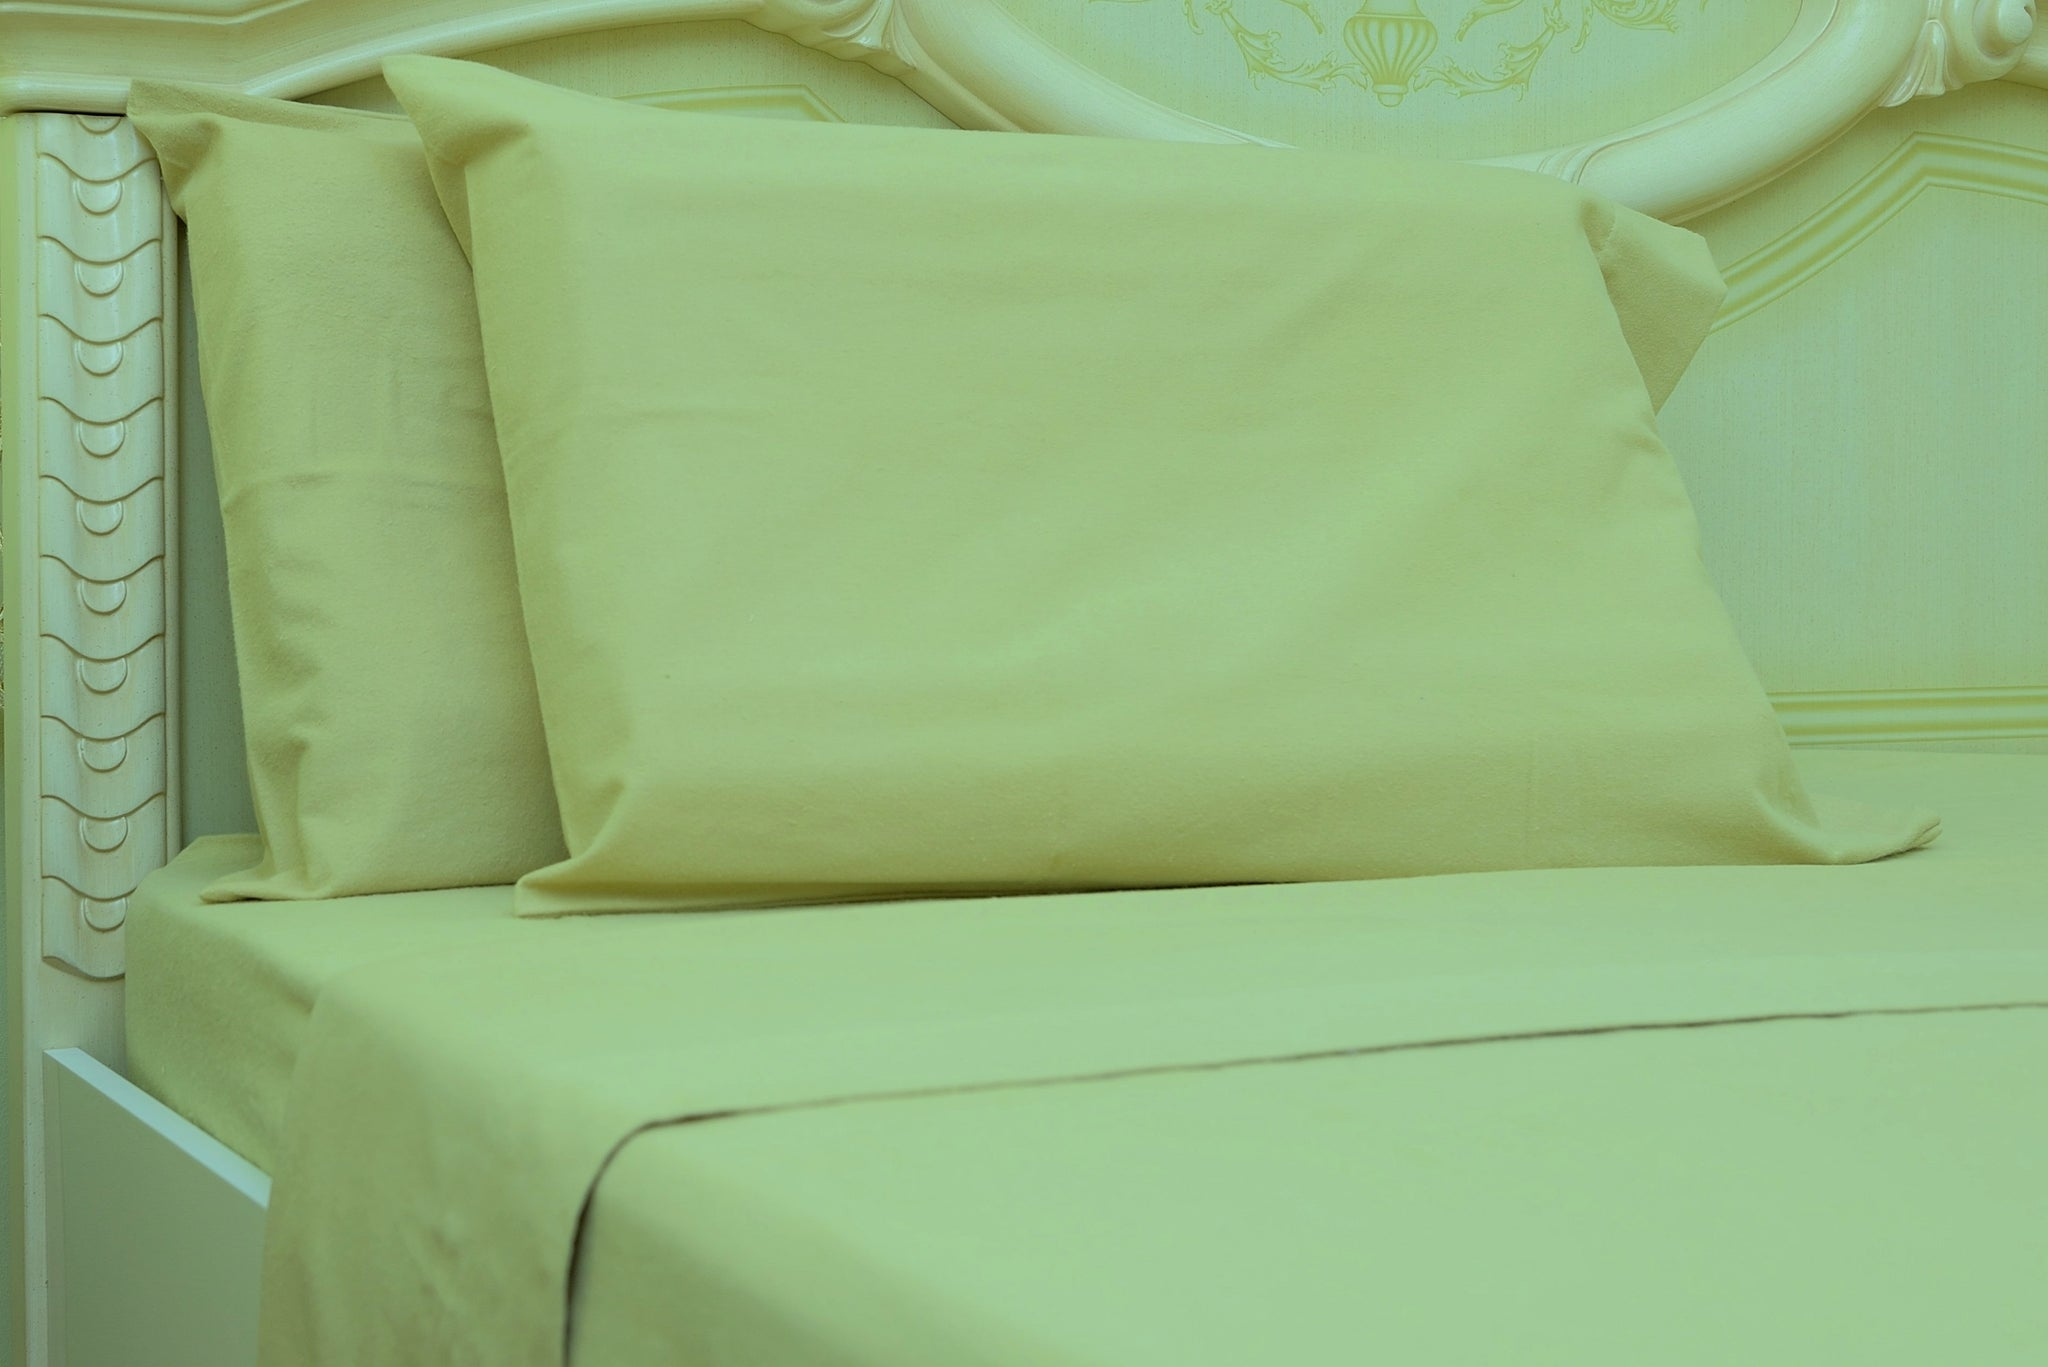 Flannel Fitted Sheet - %100 Cotton, Brushed, Top Sheet -Light Brown- Queen Size